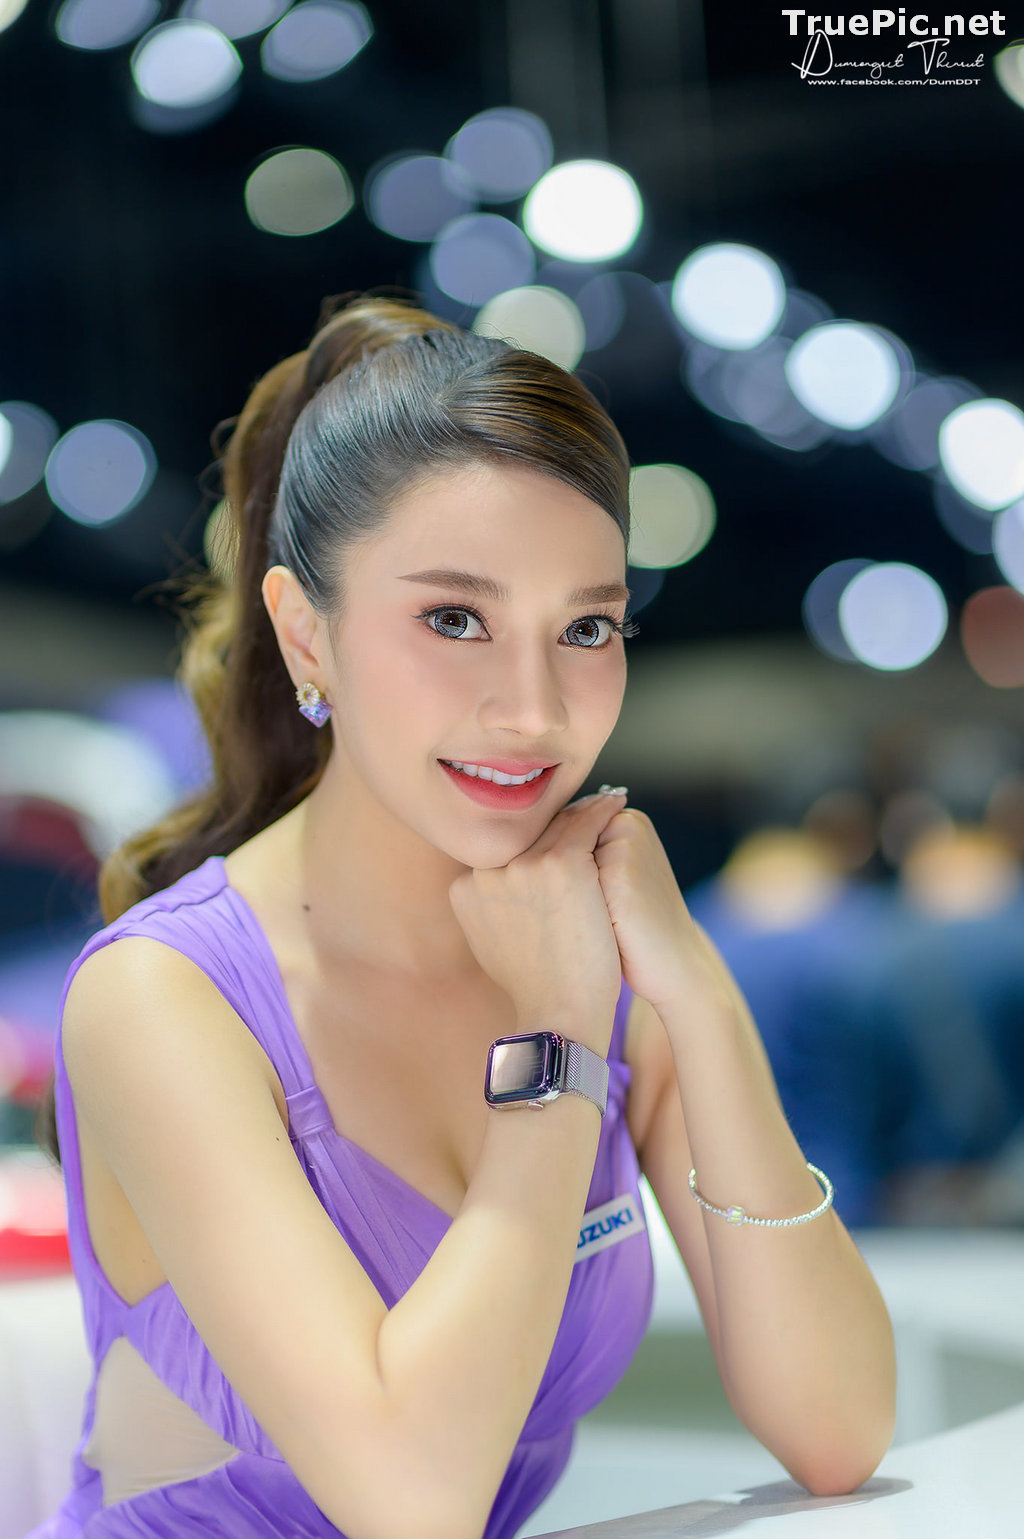 Image Thailand Racing Girl – Thailand International Motor Expo 2020 - TruePic.net - Picture-9